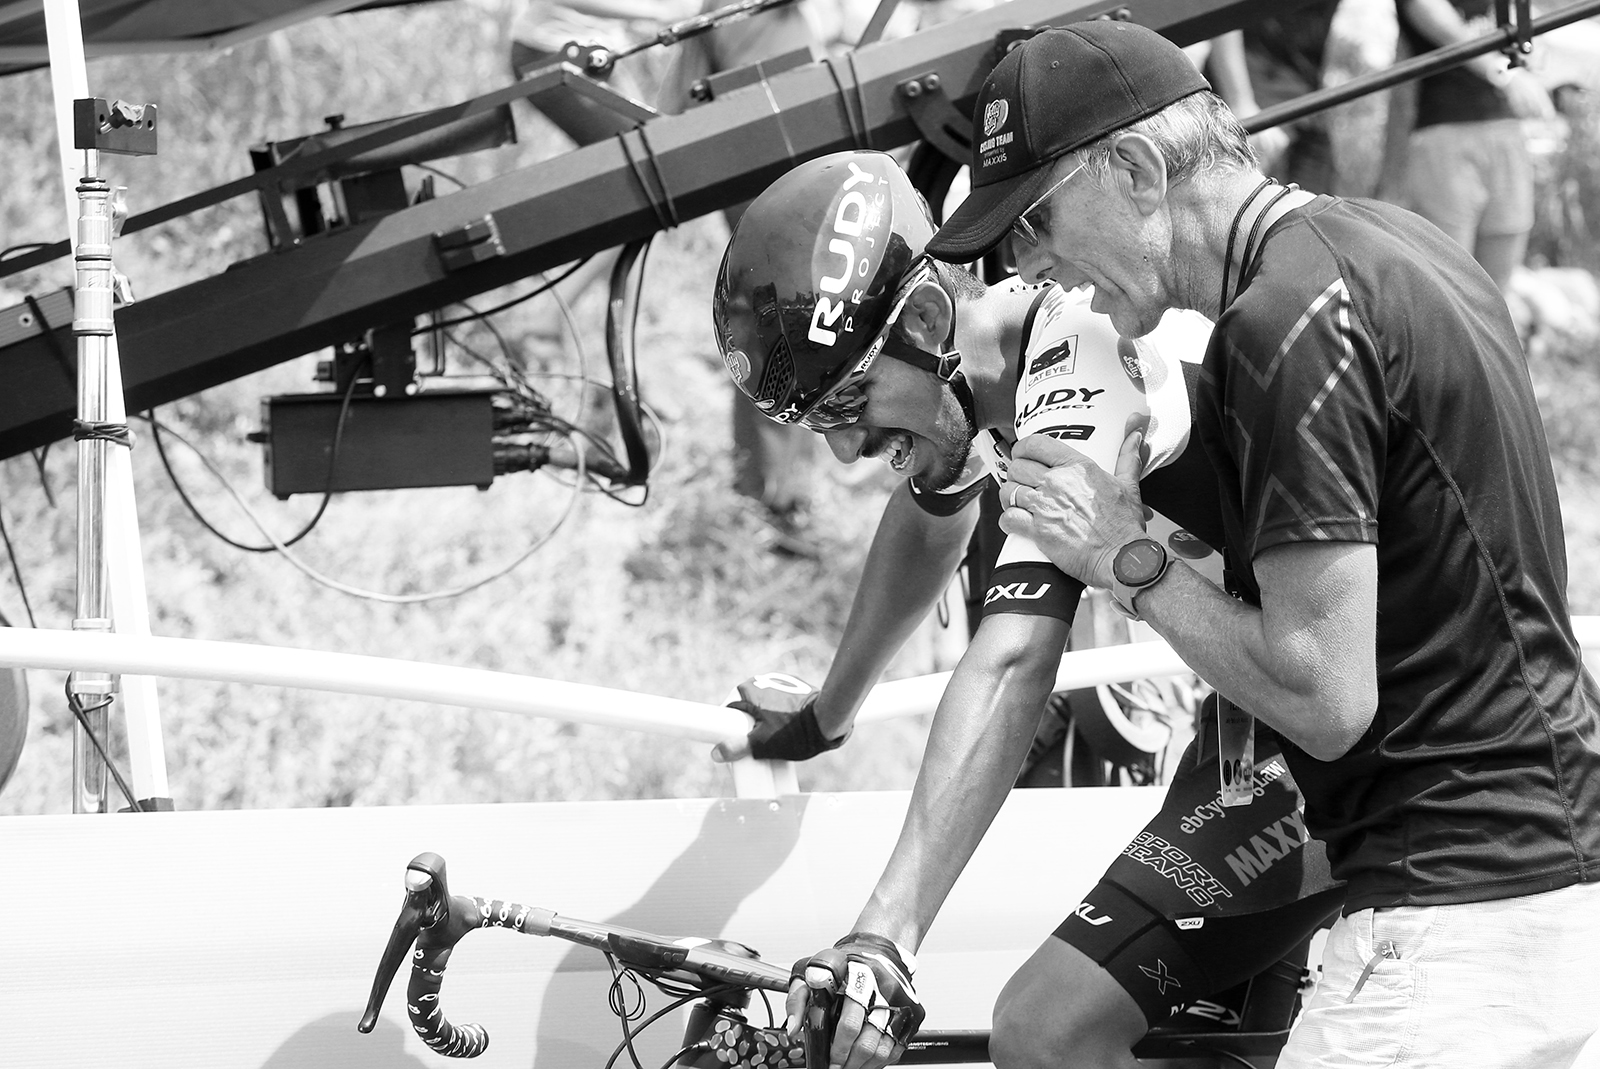 Exhauasted. 2018 Tour of Utah Stage 4, August 8, 2018, Salt Lake City, Utah. Photo by Cathy Fegan-Kim, cottonsoxphotography.net